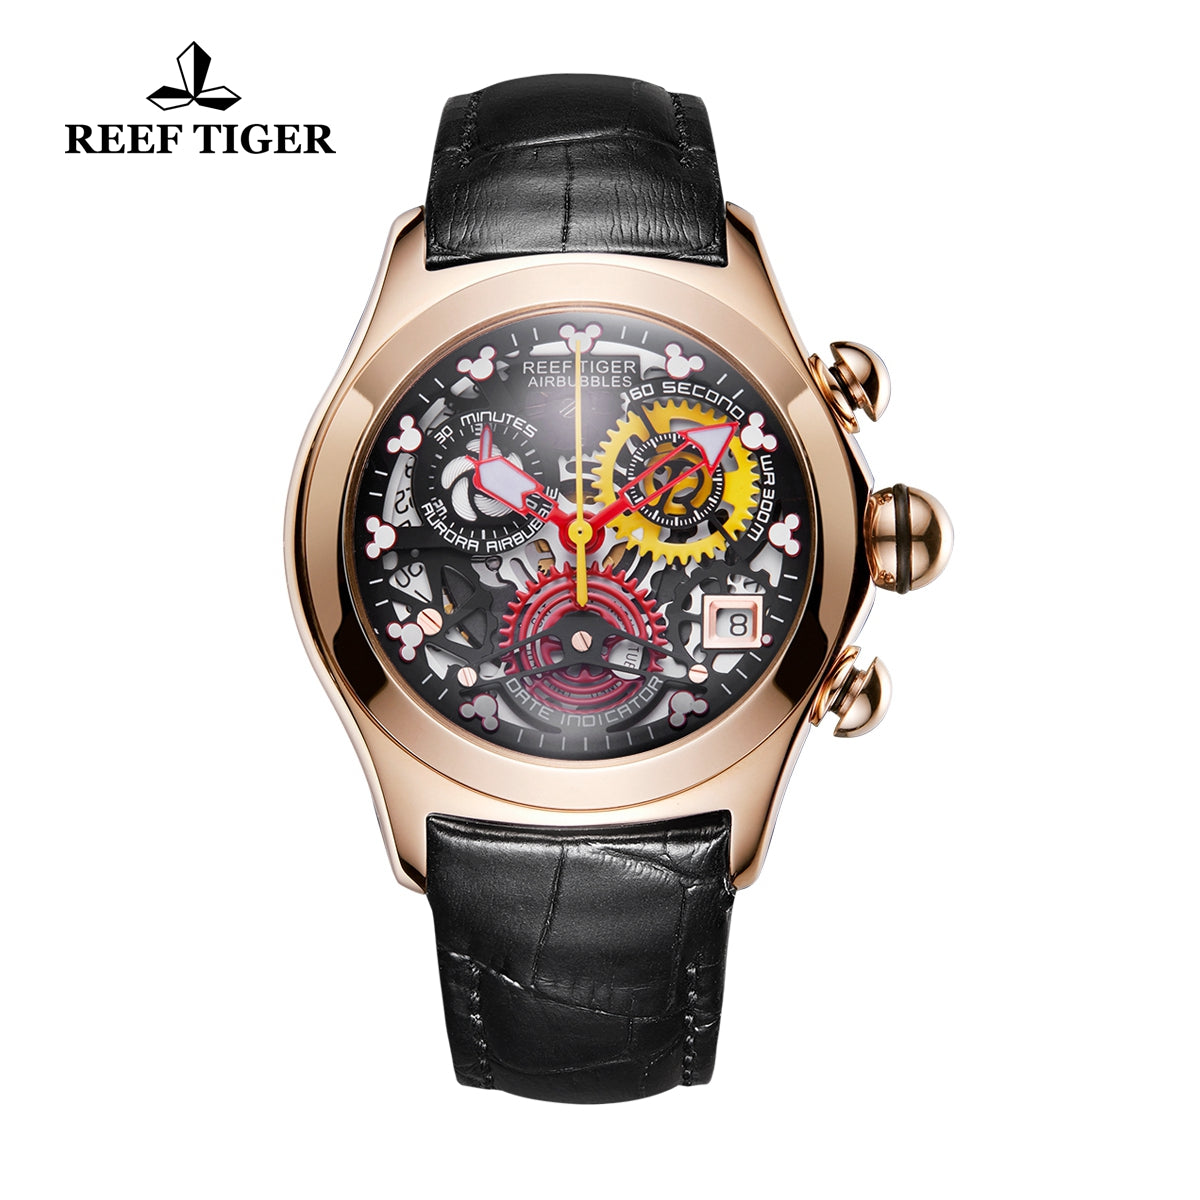 Reef Tiger Quartz Watches Rose Gold Skeleton Dial with Leather Strap Watch RGA7181